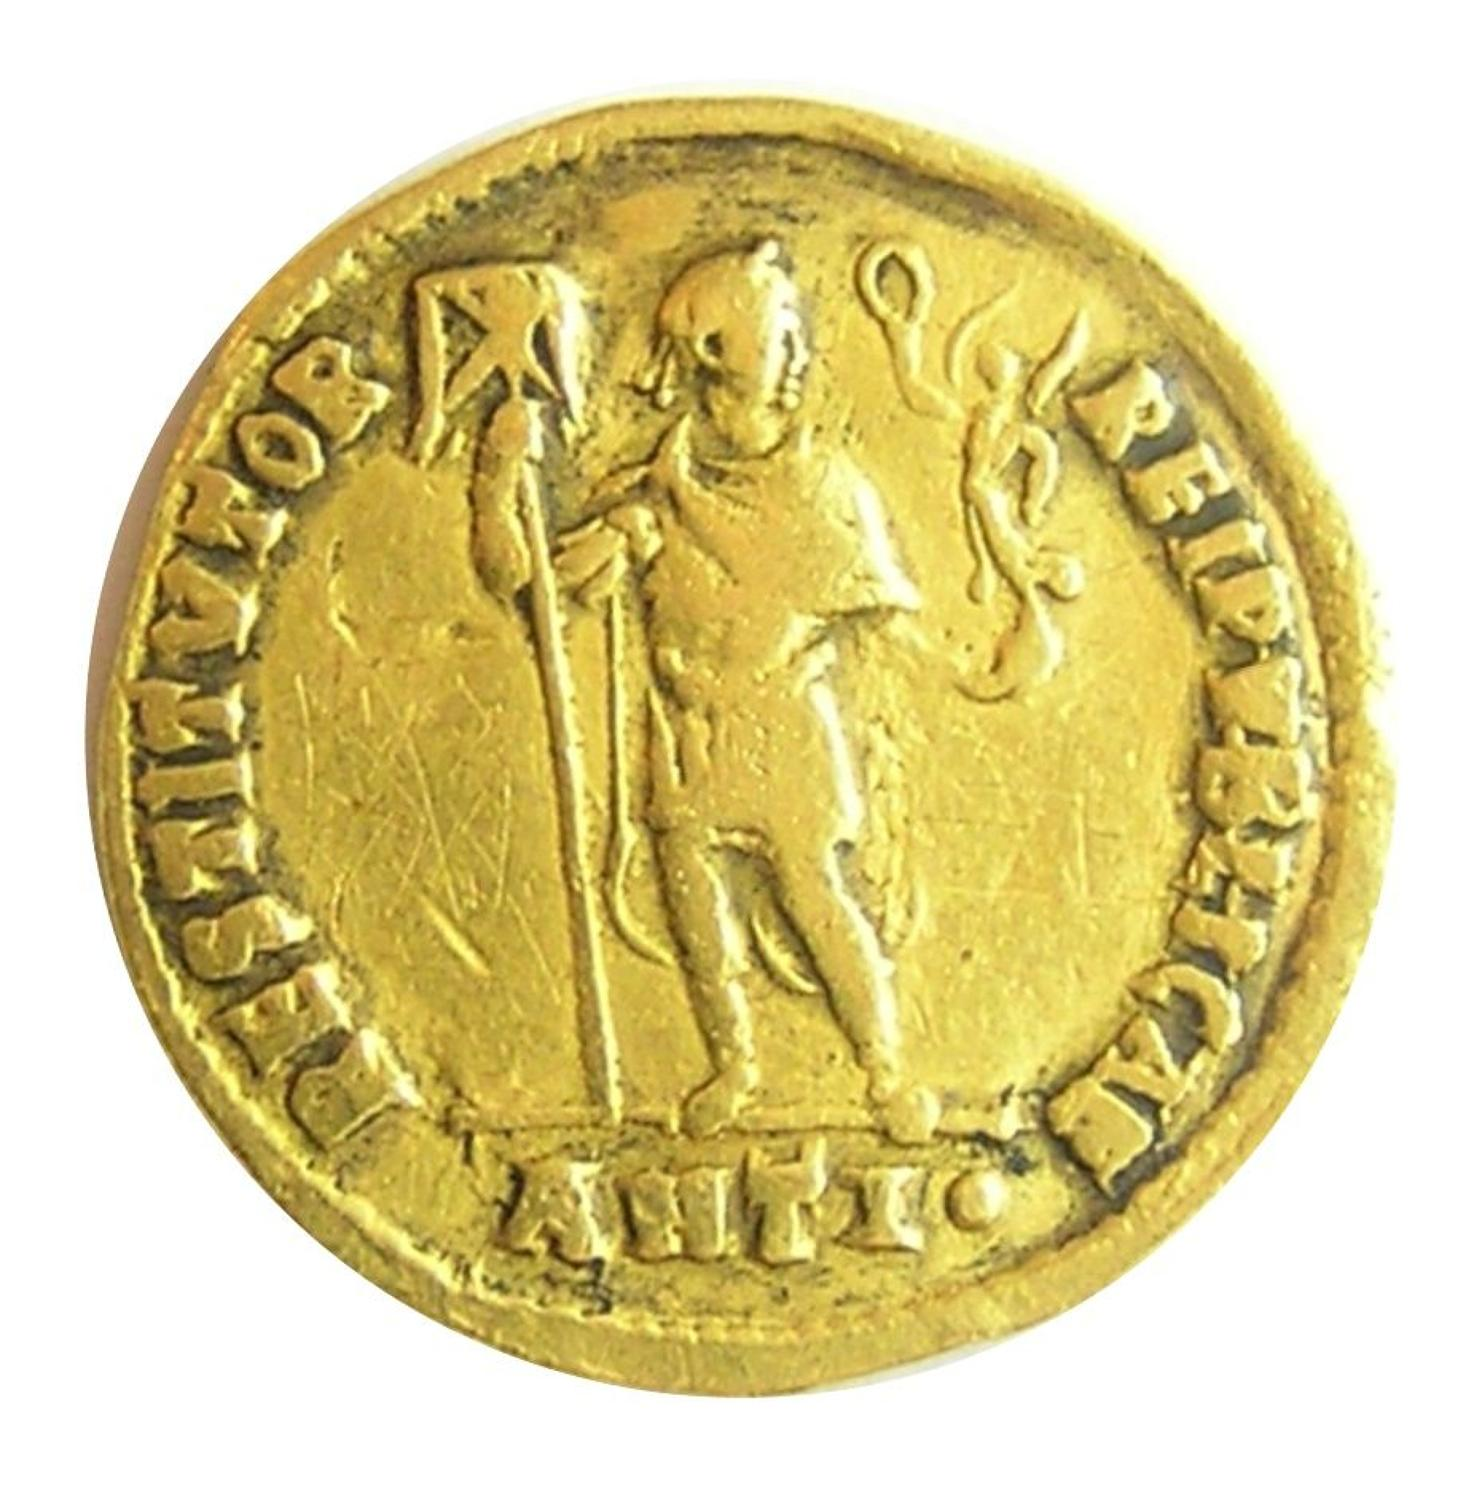 Roman Gold Solidus of Emperor Valens